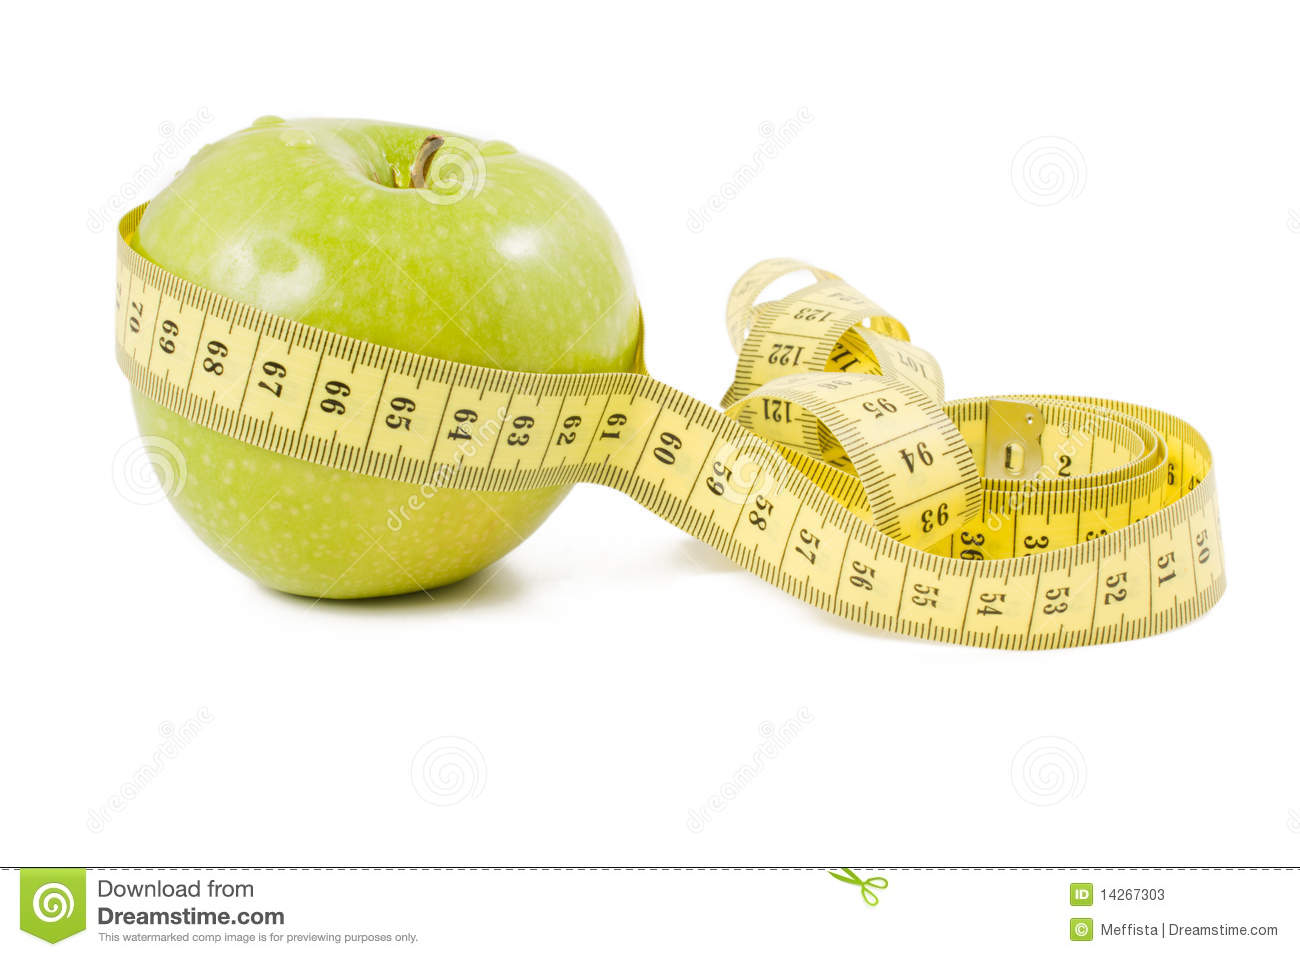 Green apple wrapped in centimetre